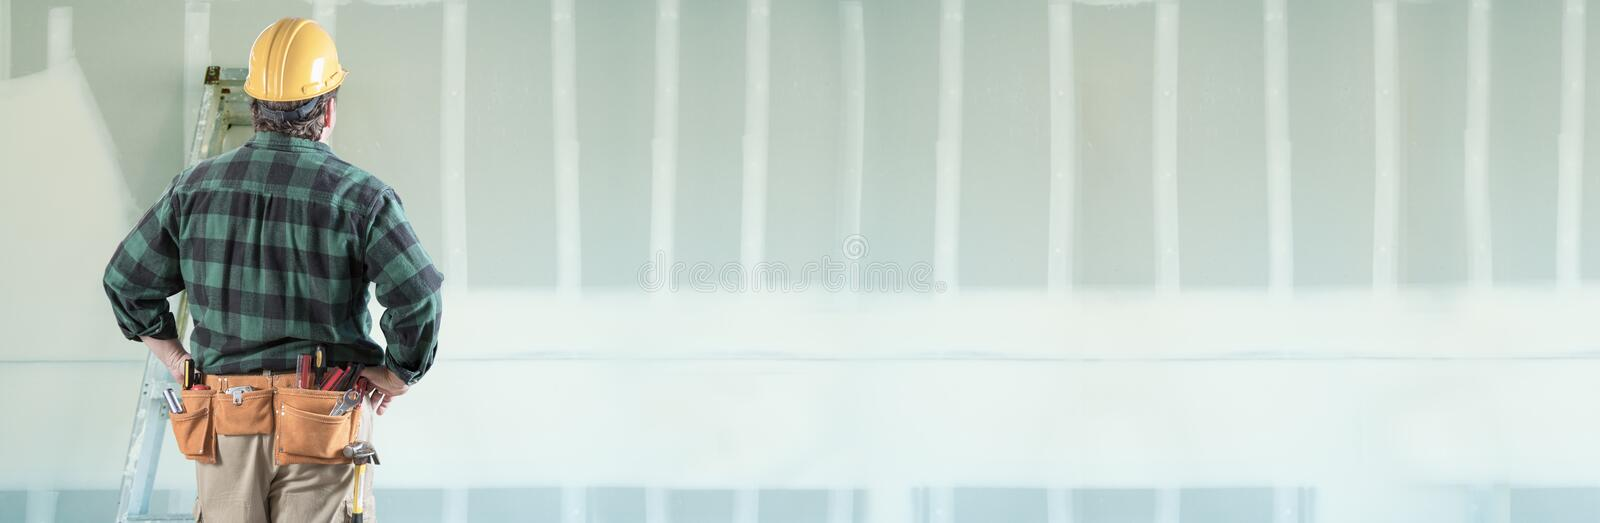 Male Contractor Wearing Hard Hat Facing Drywall Banner Background with Ladder royalty free stock image